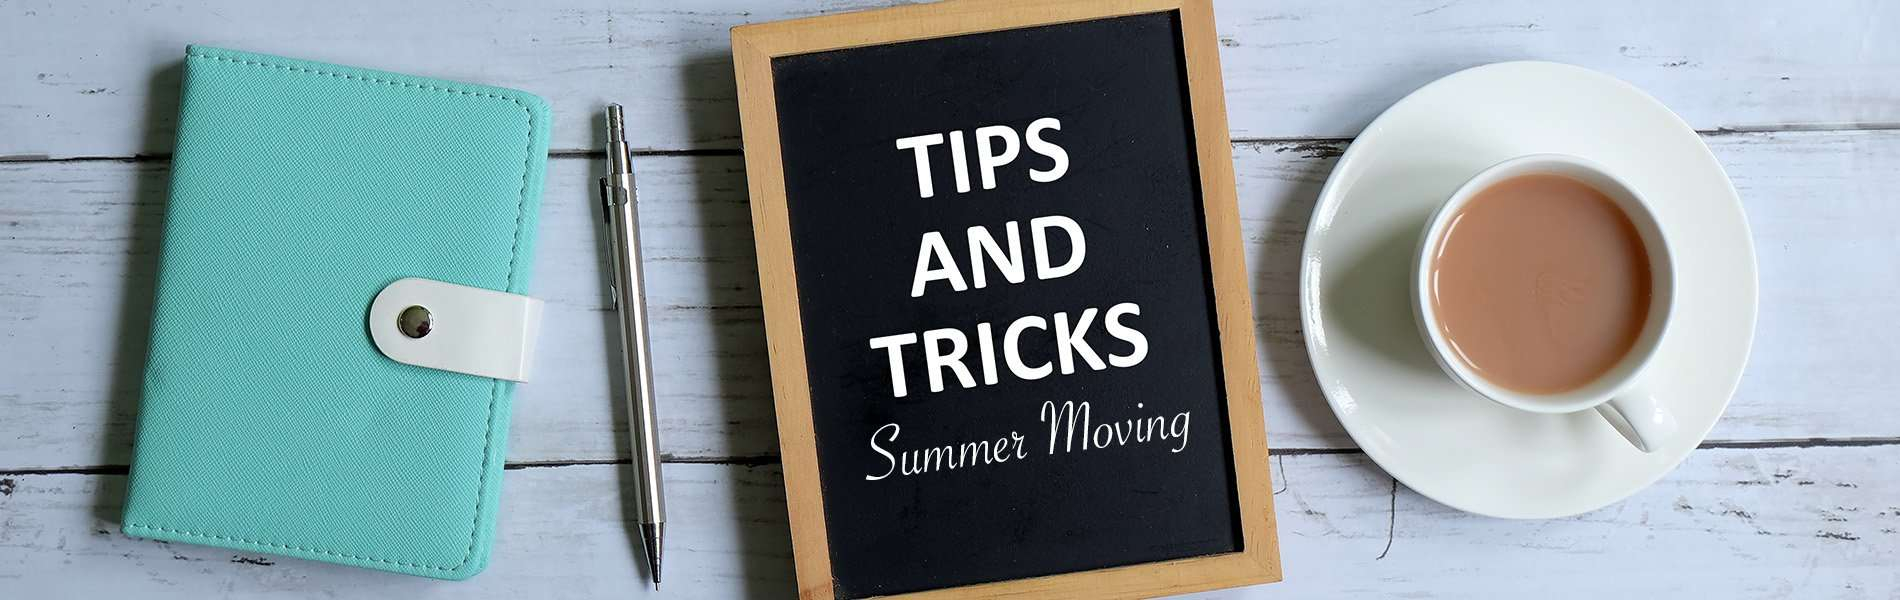 Summer moving tips photo